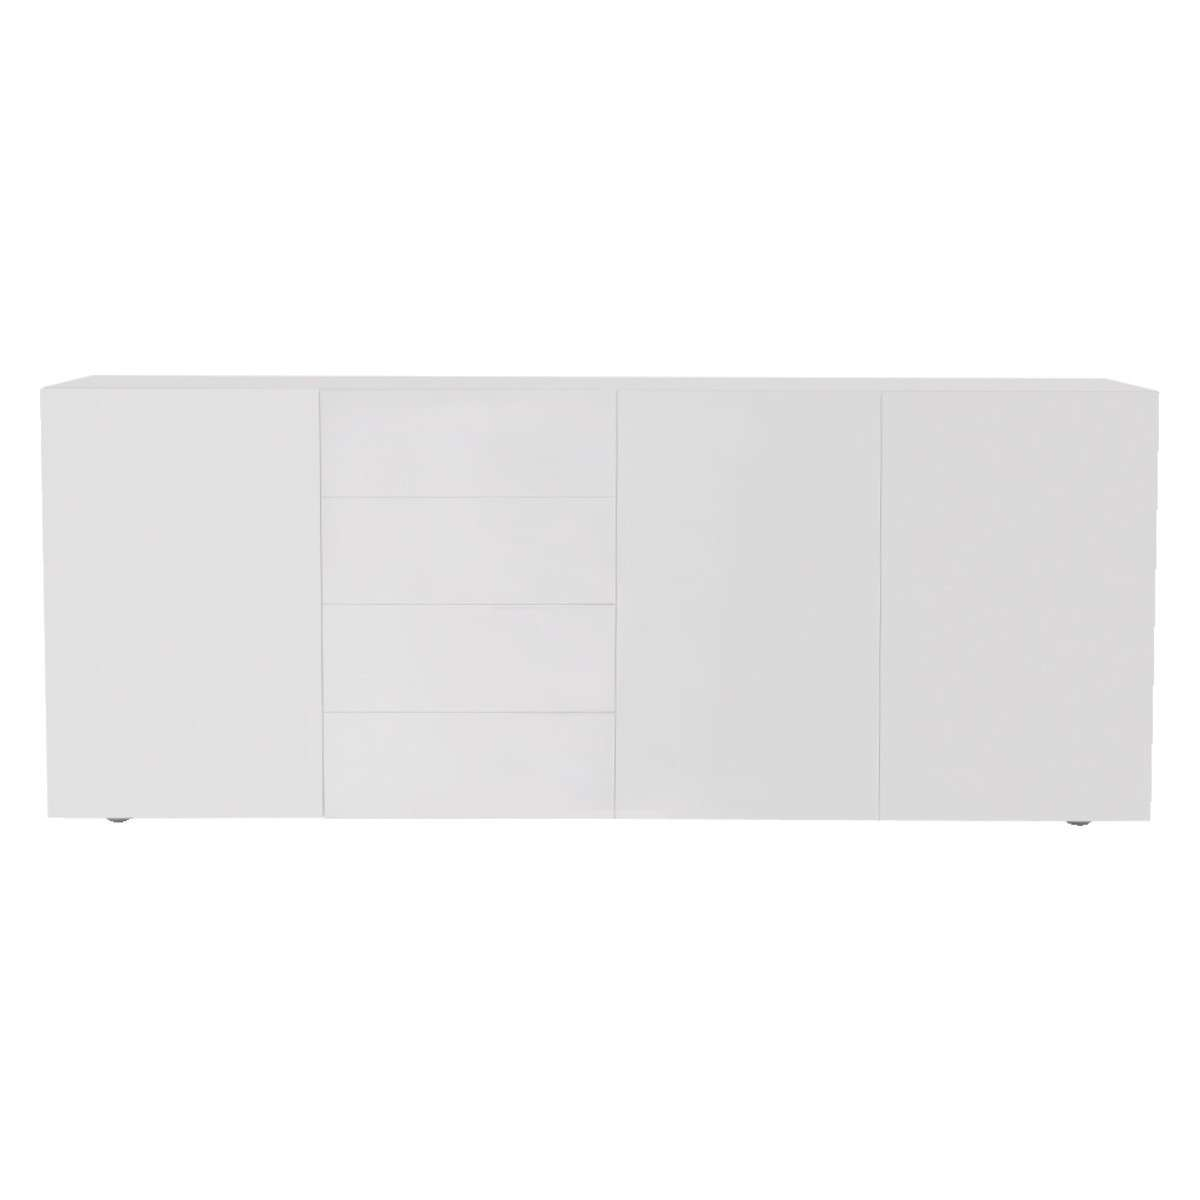 Aspen White High Gloss Sideboard | Buy Now At Habitat Uk Within White High Gloss Sideboards (View 3 of 20)